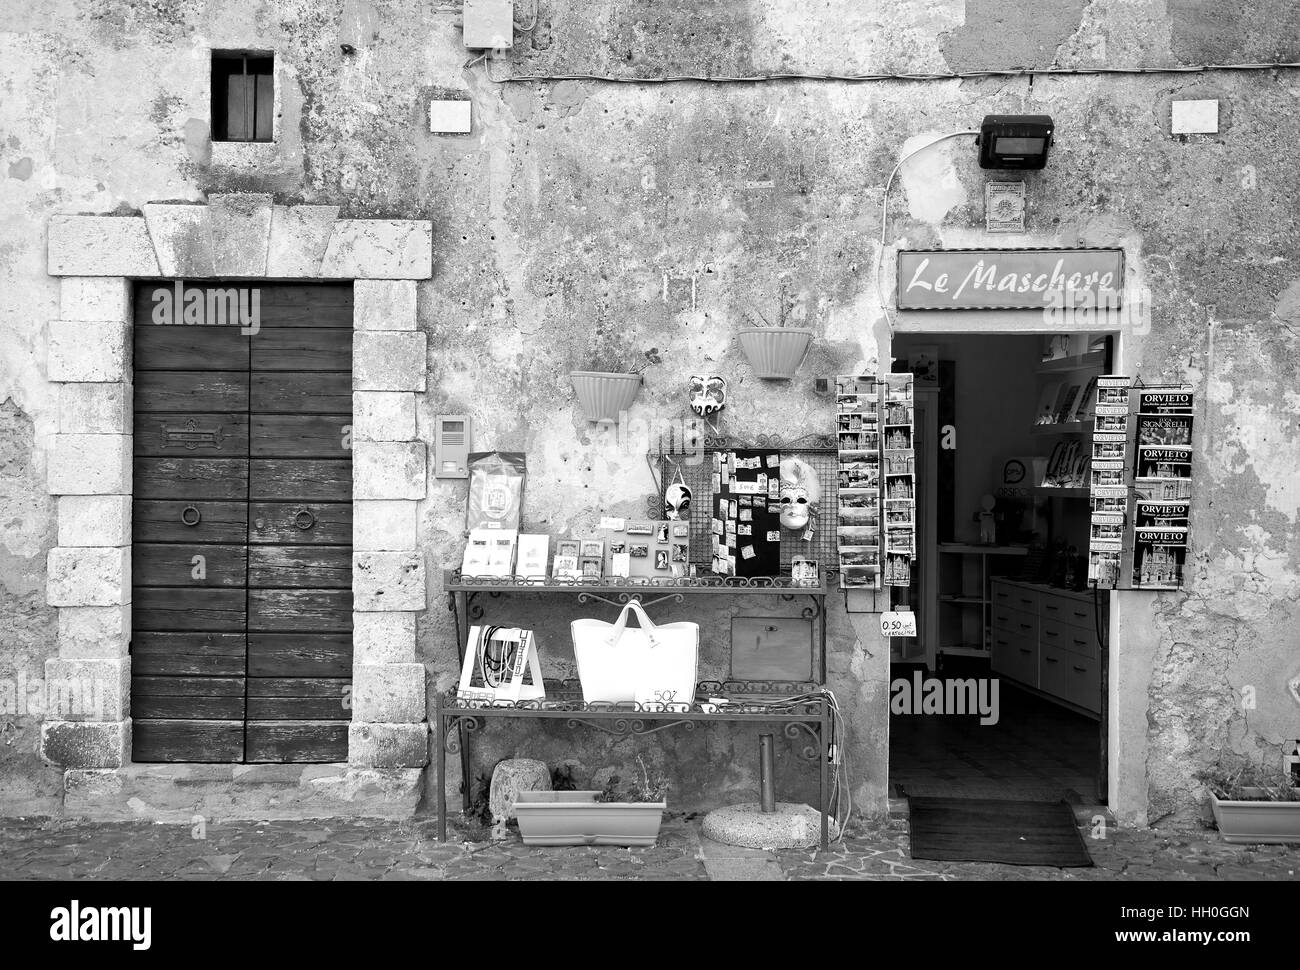 Orvieto, Italy - March 16, 2014: one of the many souvenir shop in Orvieto (Italy). - Stock Image